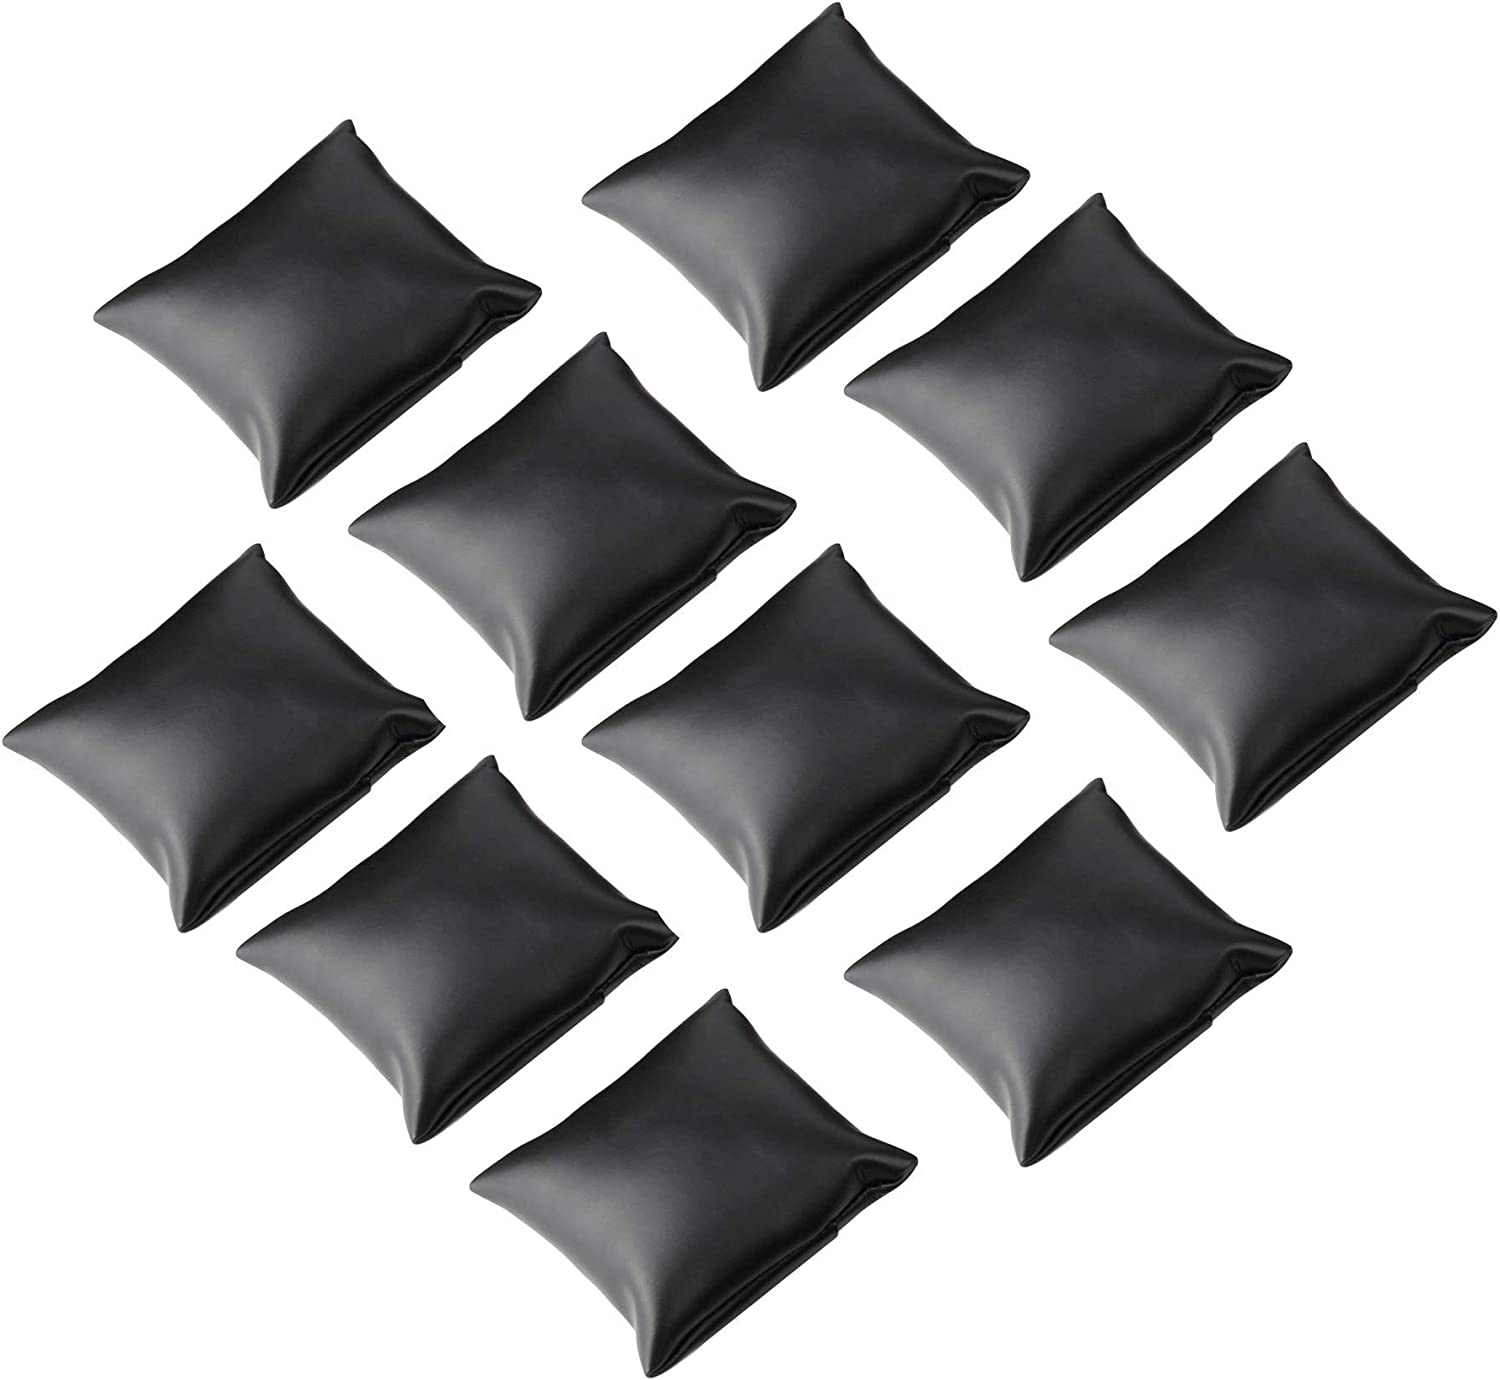 Sansheng 10pcs PU Leather for Pillow Jewelry Show - Black